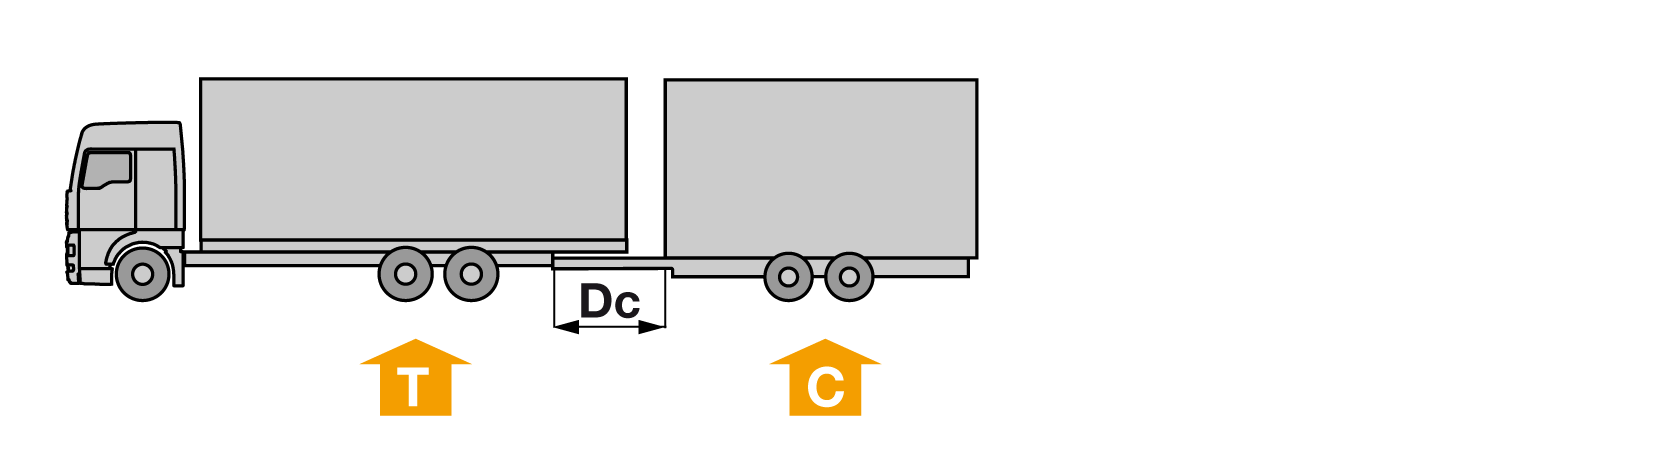 Dc-value: Towing vehicle and central-axle trailer